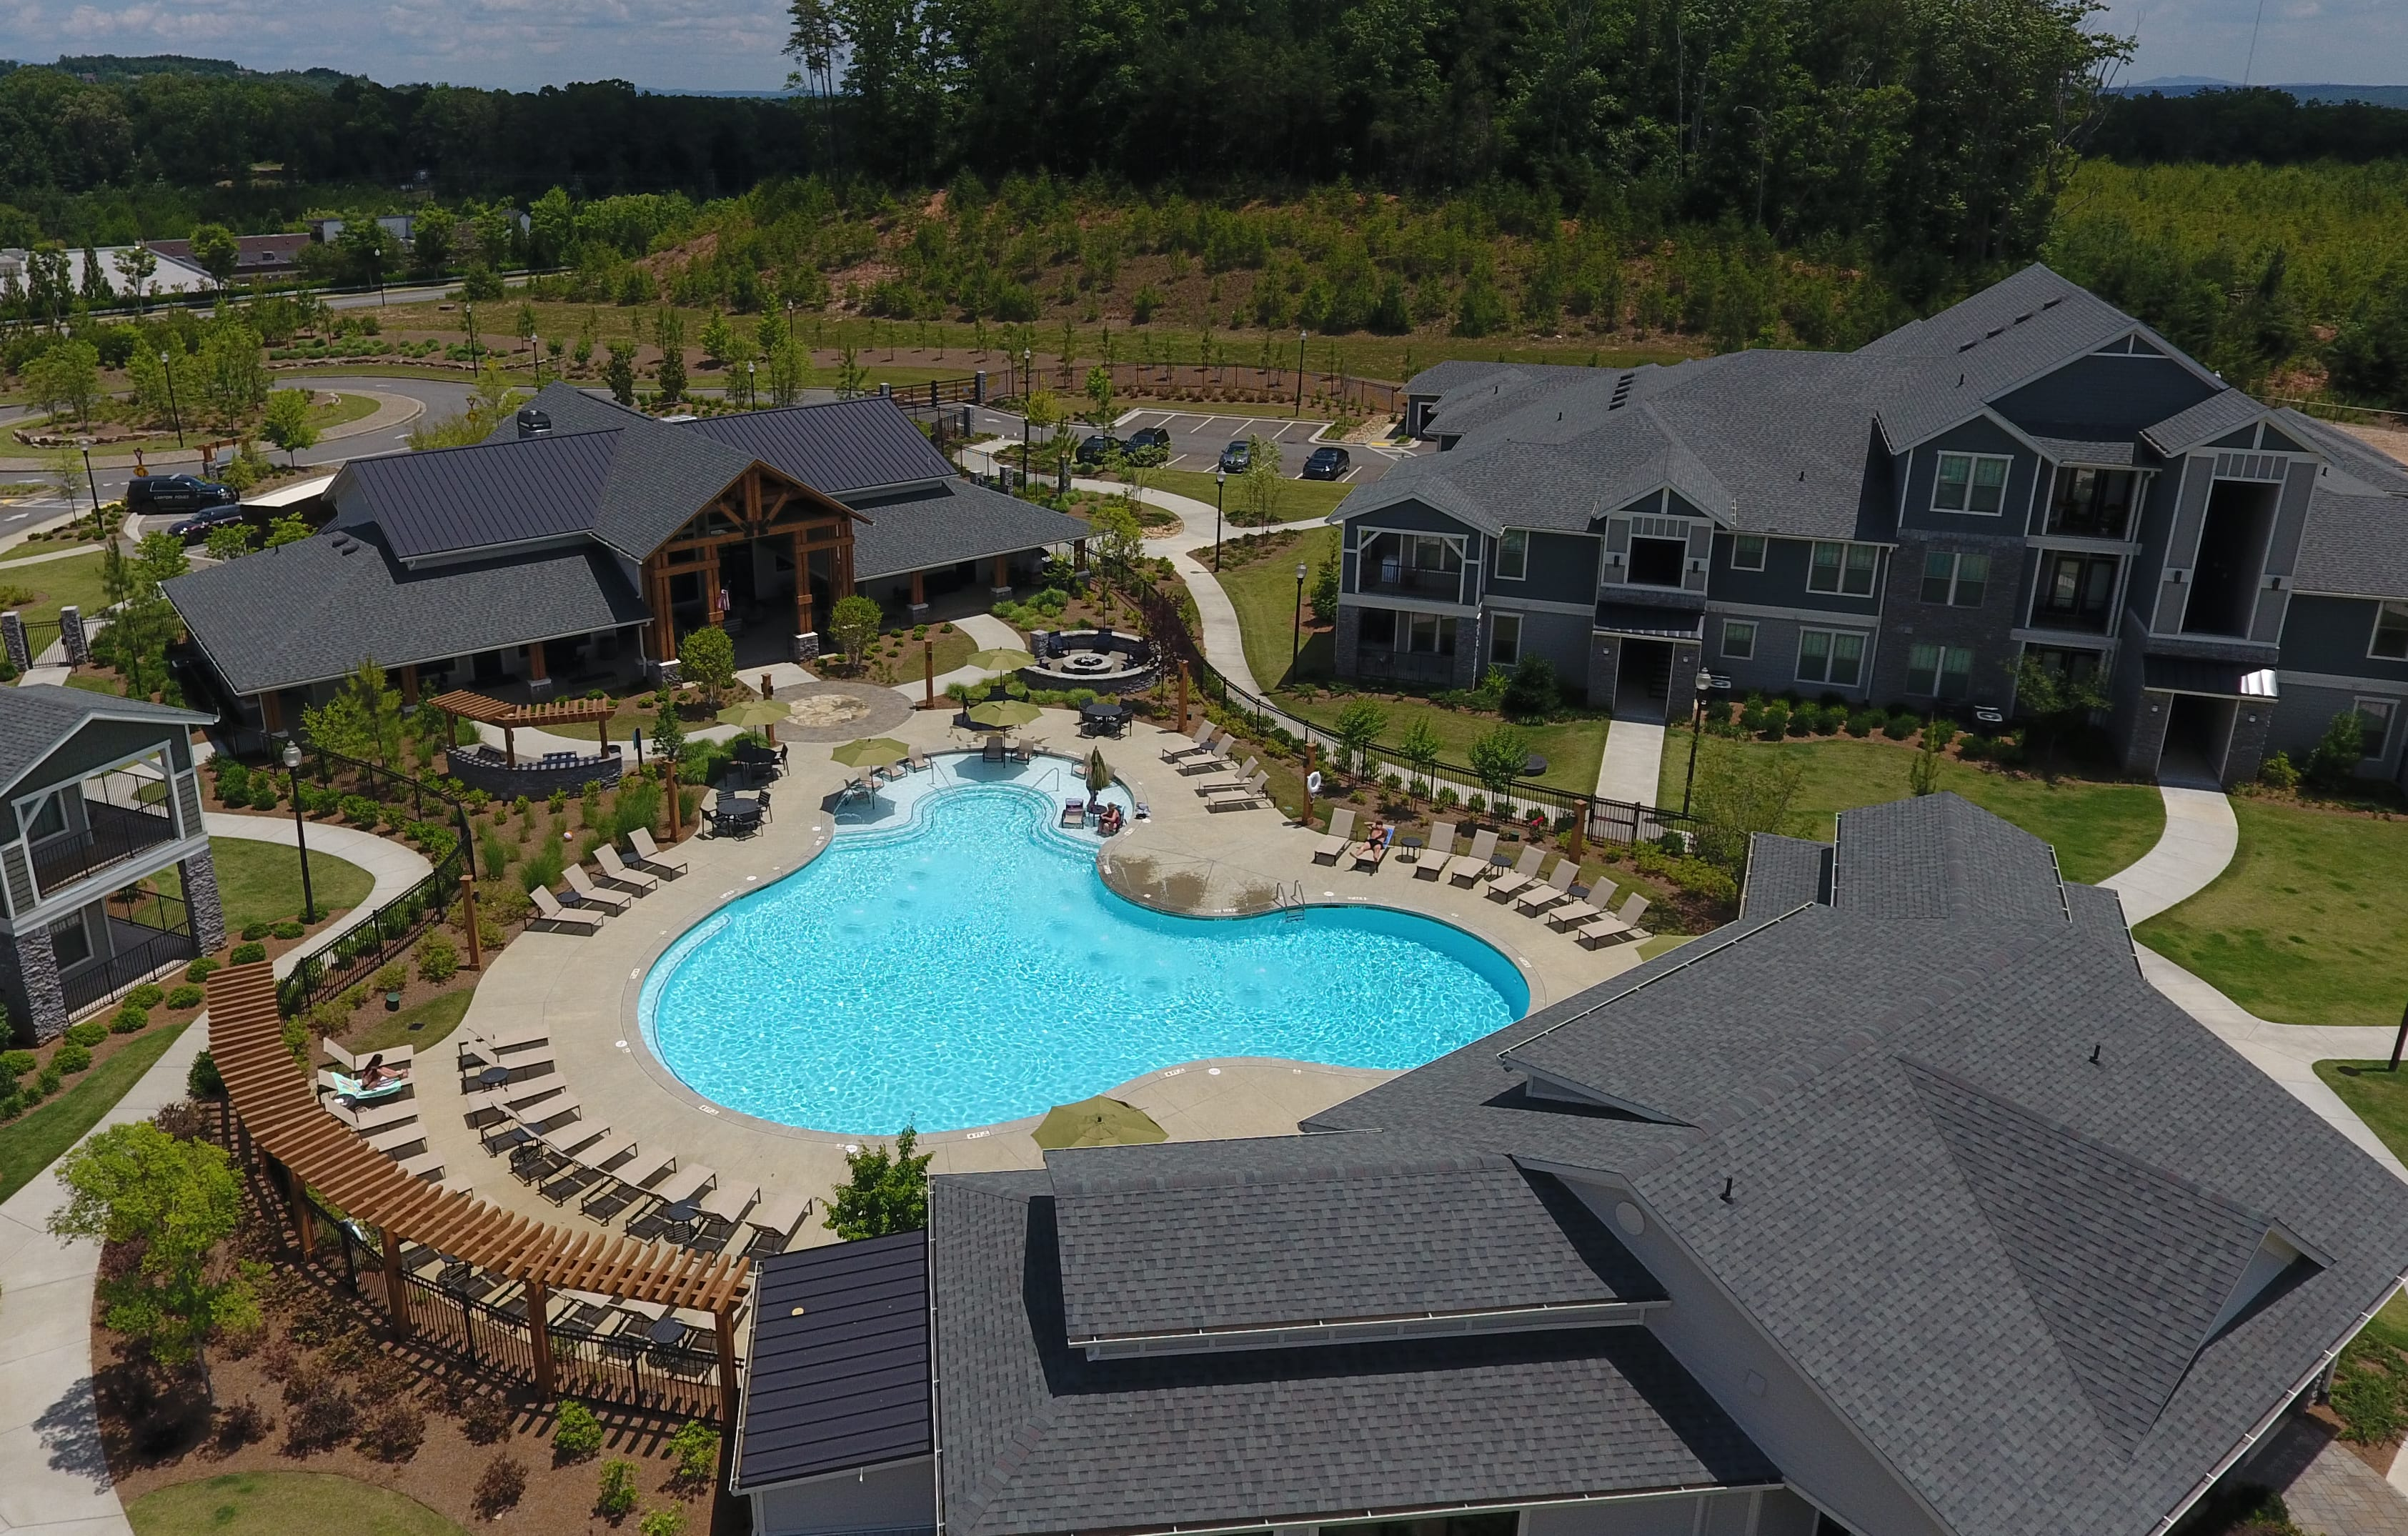 Drone shot view of community showing the resort style pool, leasing office and apartment buildings